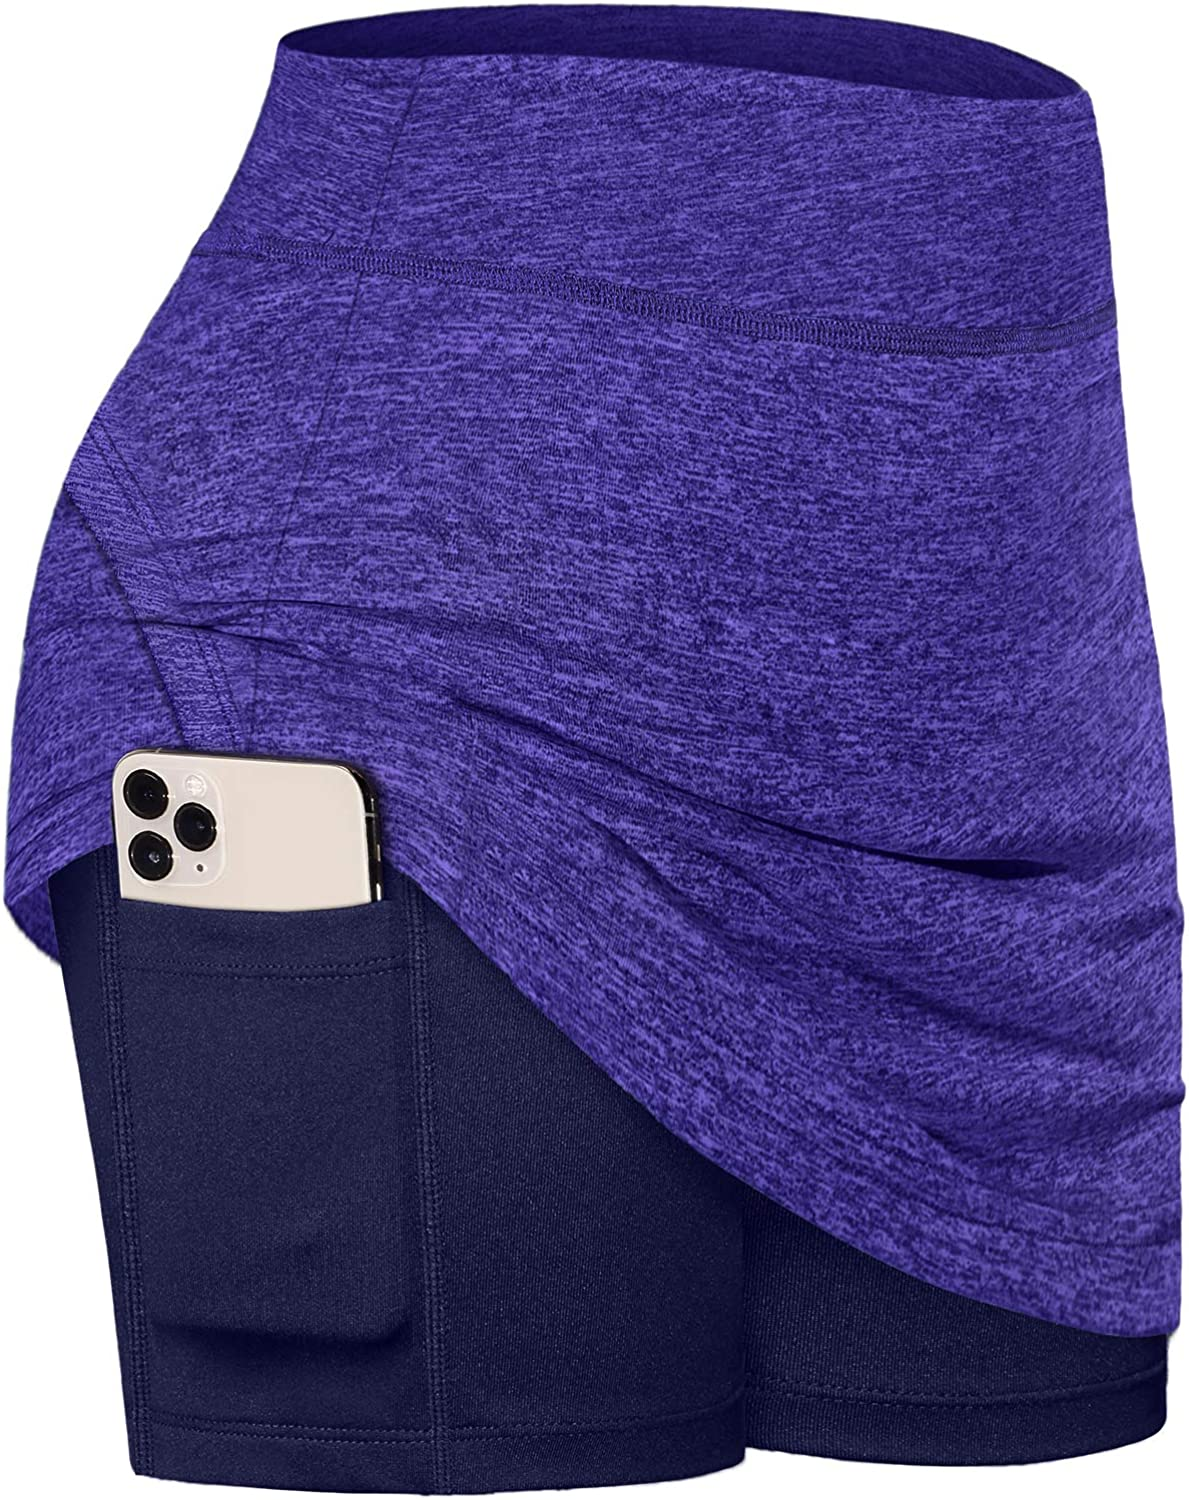 Amazon.com: Fulbelle Casual Skirts for Women, Teen Girls Summer Athletic  Tennis Skirt Golf Skorts with Pockets Workout Running Sport Inner Shorts  Sporty Spandex Training Outfit Purple Large: Clothing